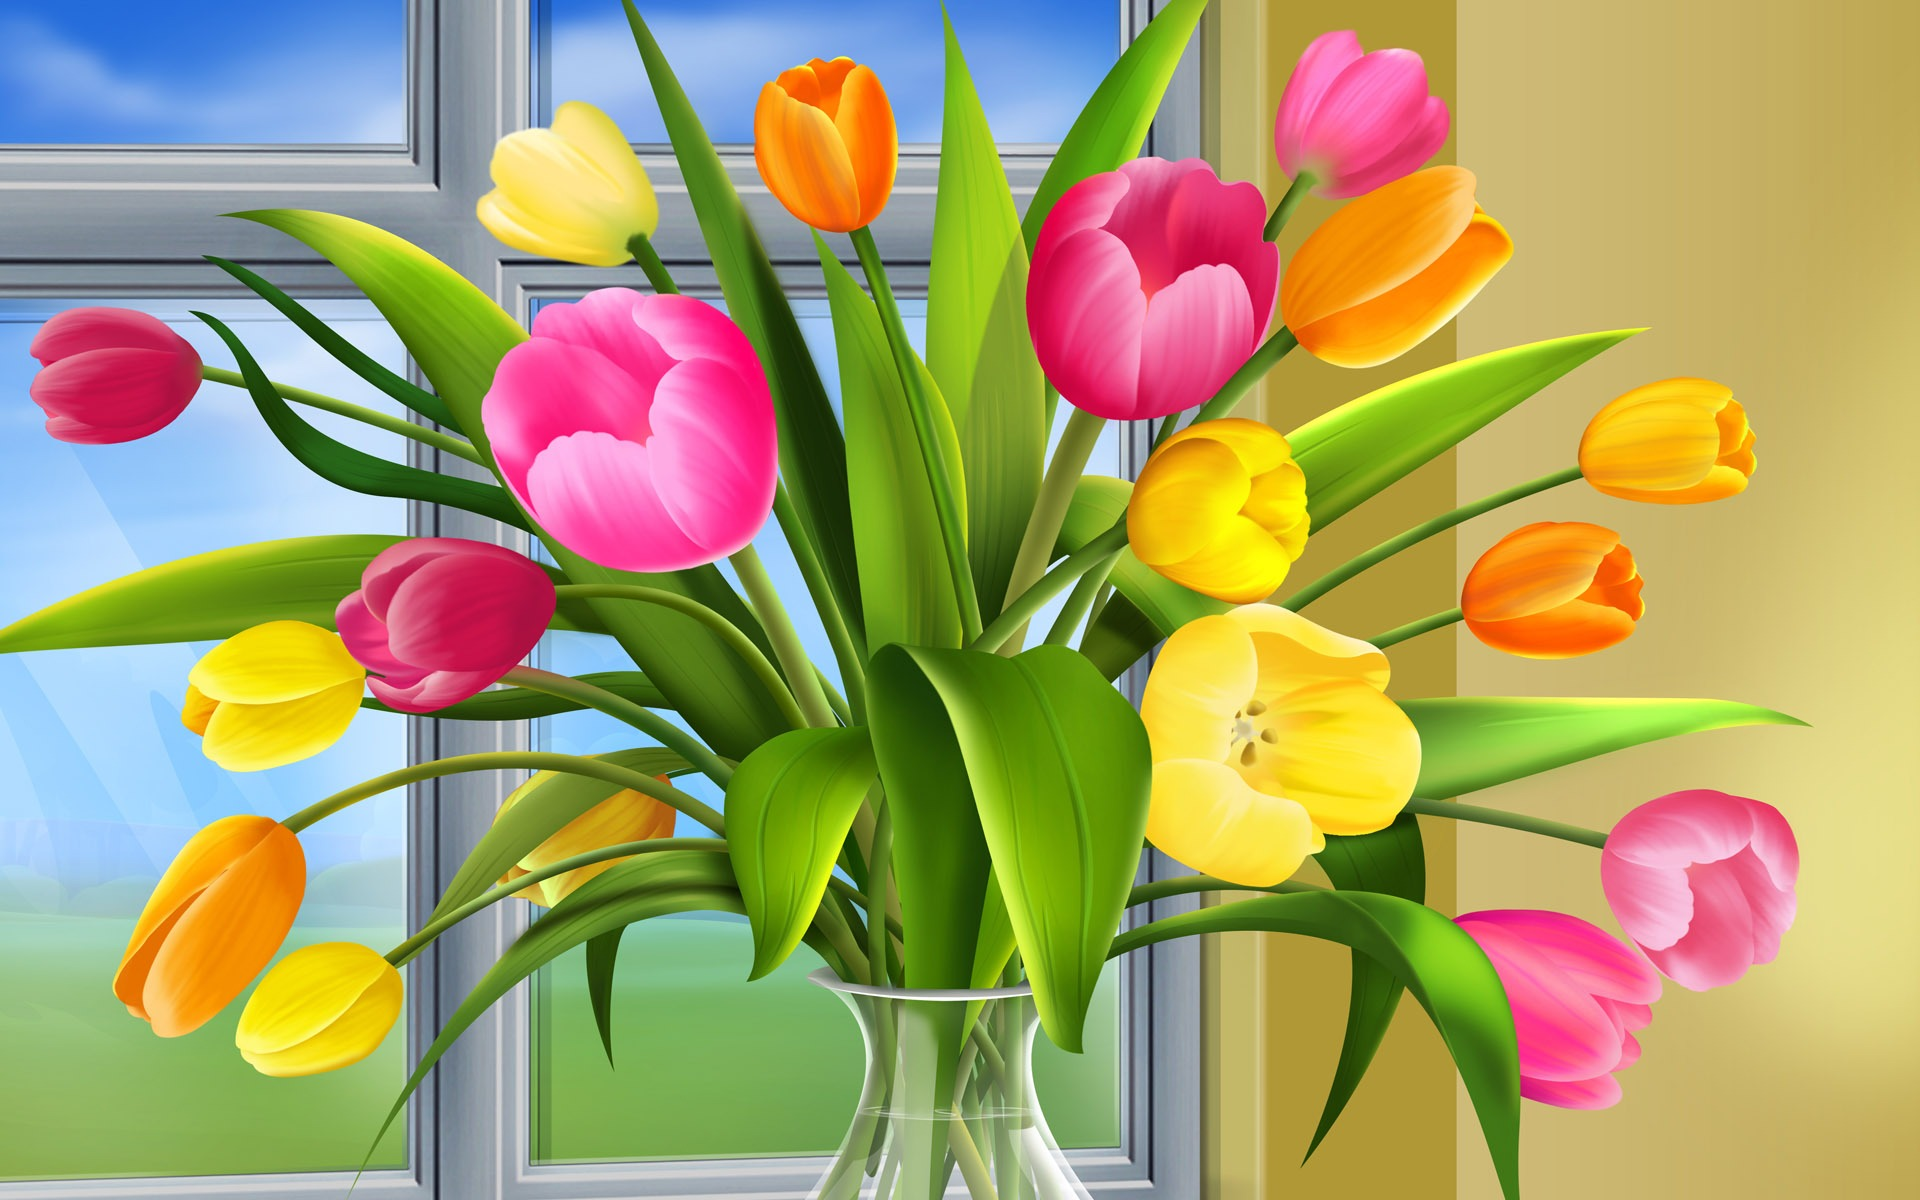 Tulips vector wallpaper vector 3d wallpapers in jpg format for free tulips vector wallpaper vector 3d wallpapers thecheapjerseys